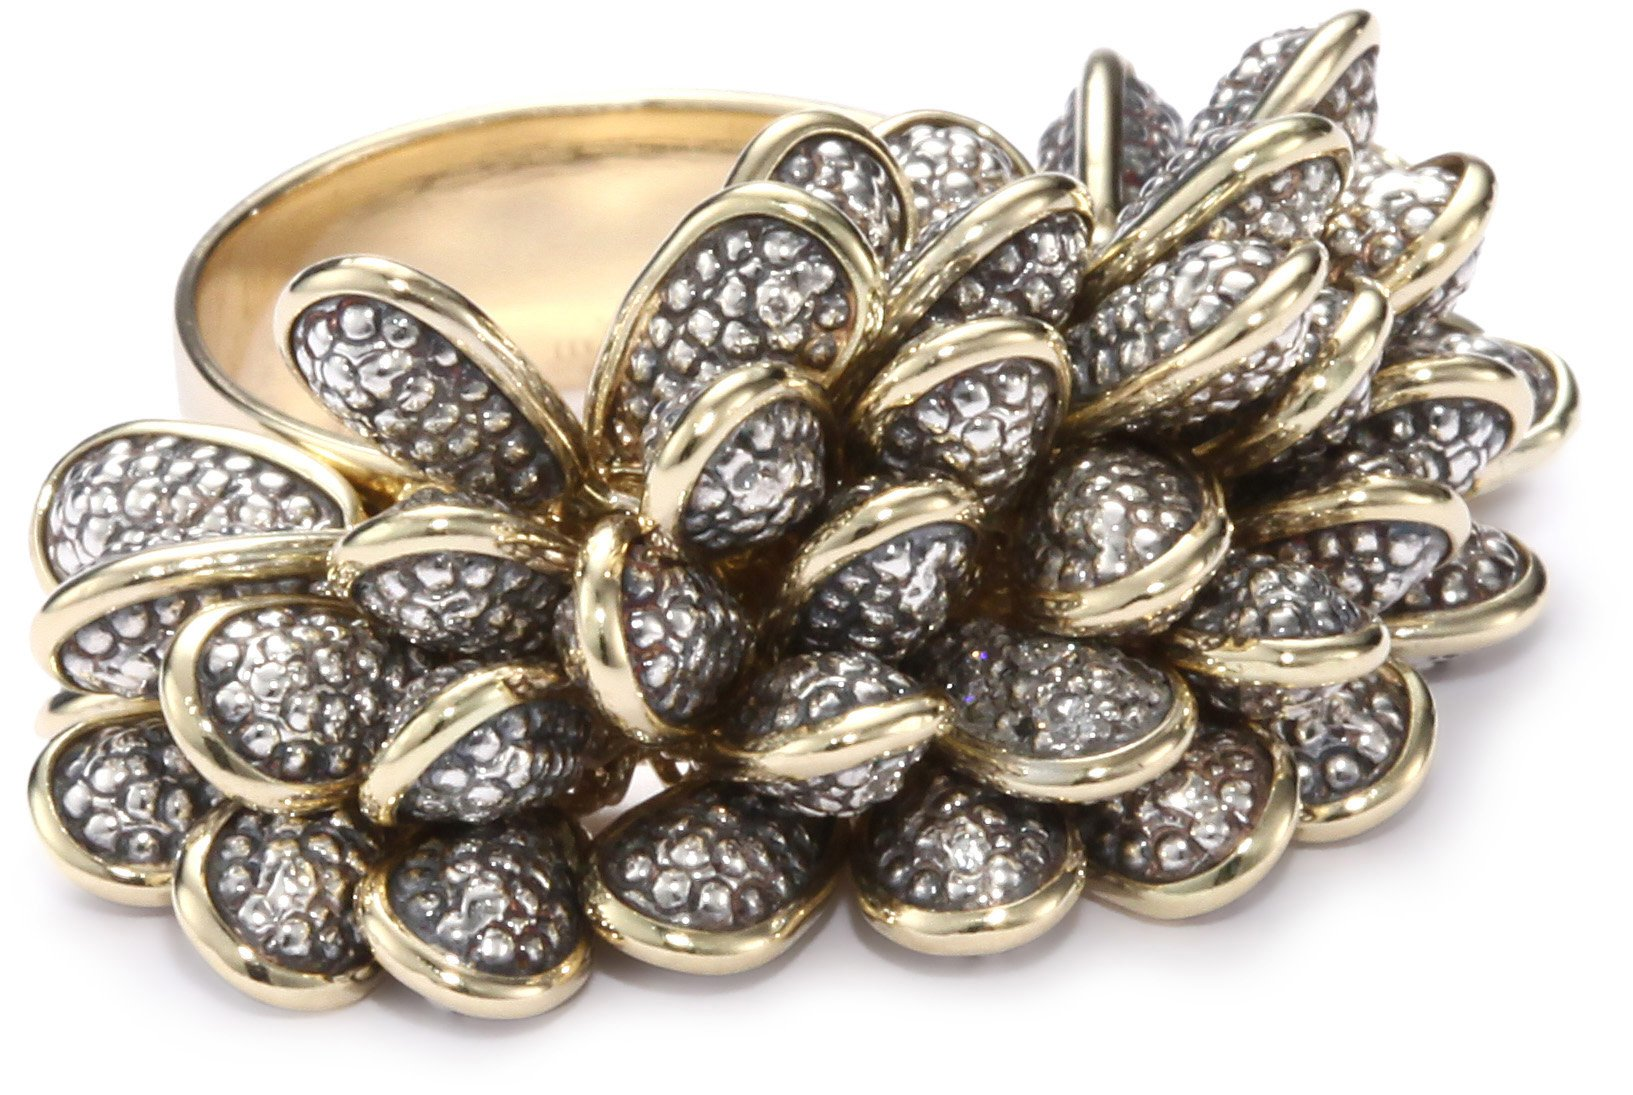 Moritz Glik ''New Wave'' 18K Gold, Oxidized Silver and Diamond Textured Beaded Ring, Size 7